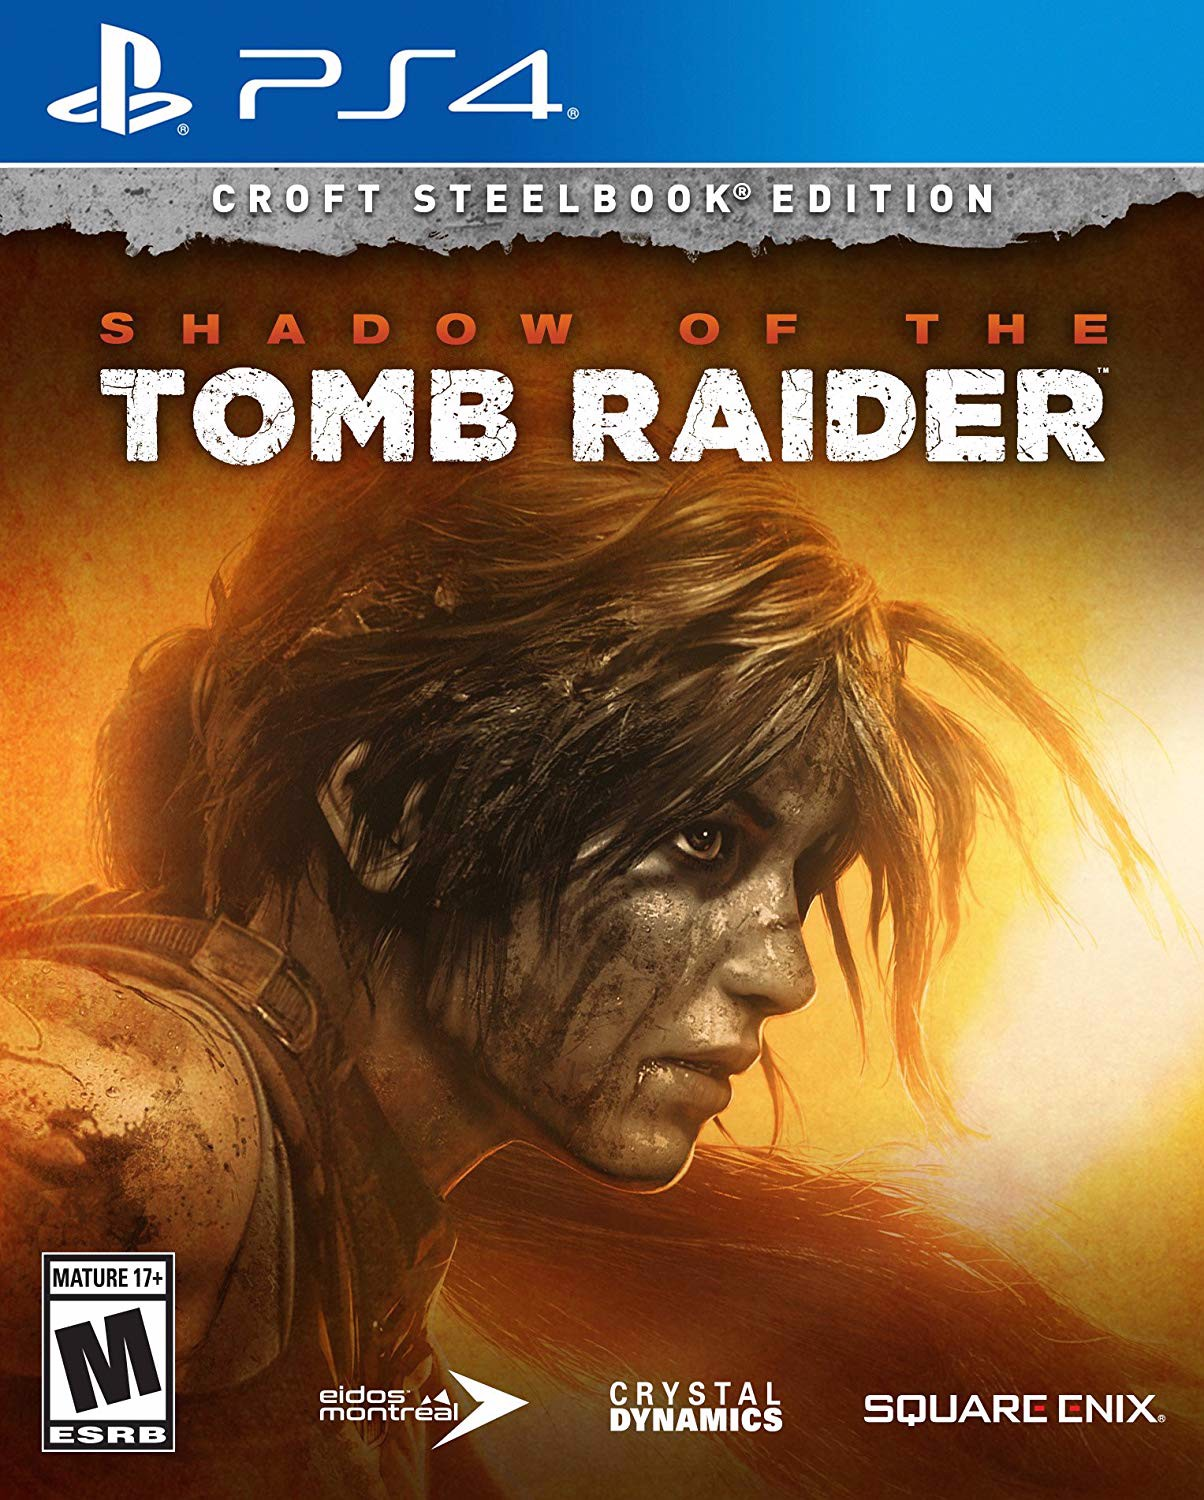 645 - Shadow of the Tomb Raider- Croft Steelbook Edition